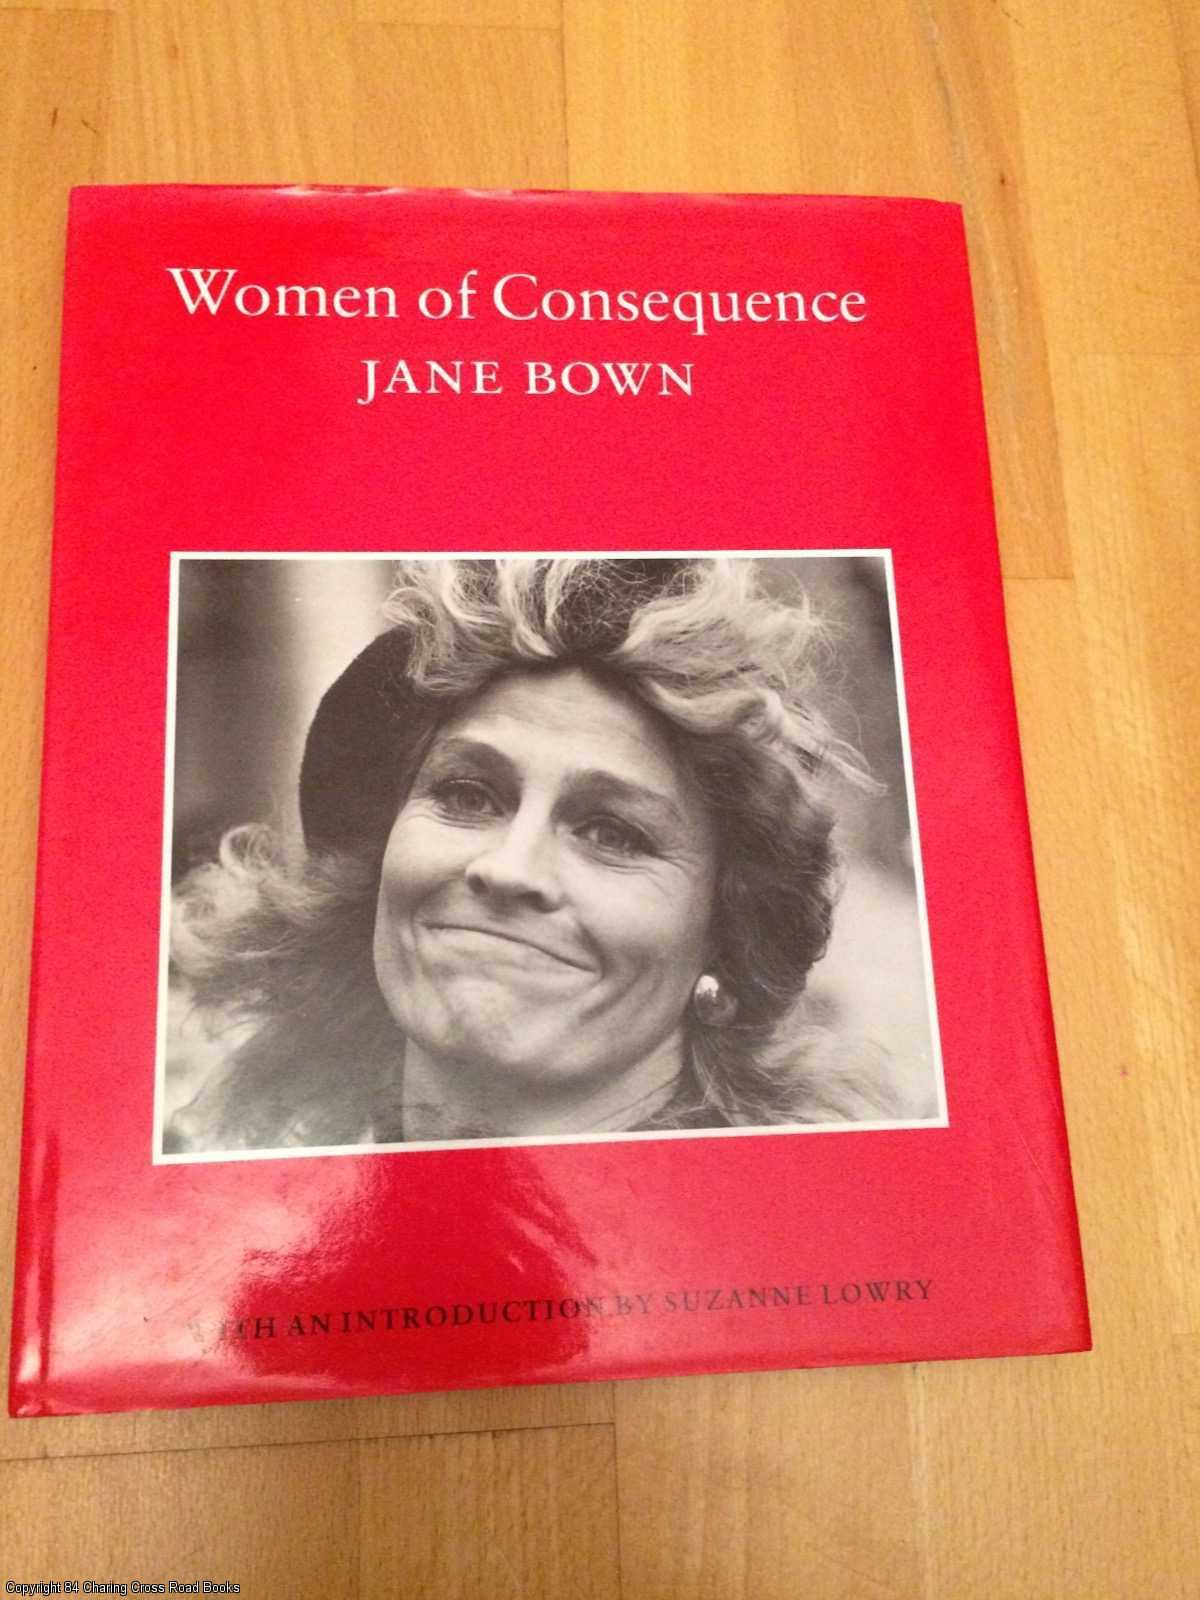 BOWN, JANE; LOWRY, SUZANNE - Women of Consequence